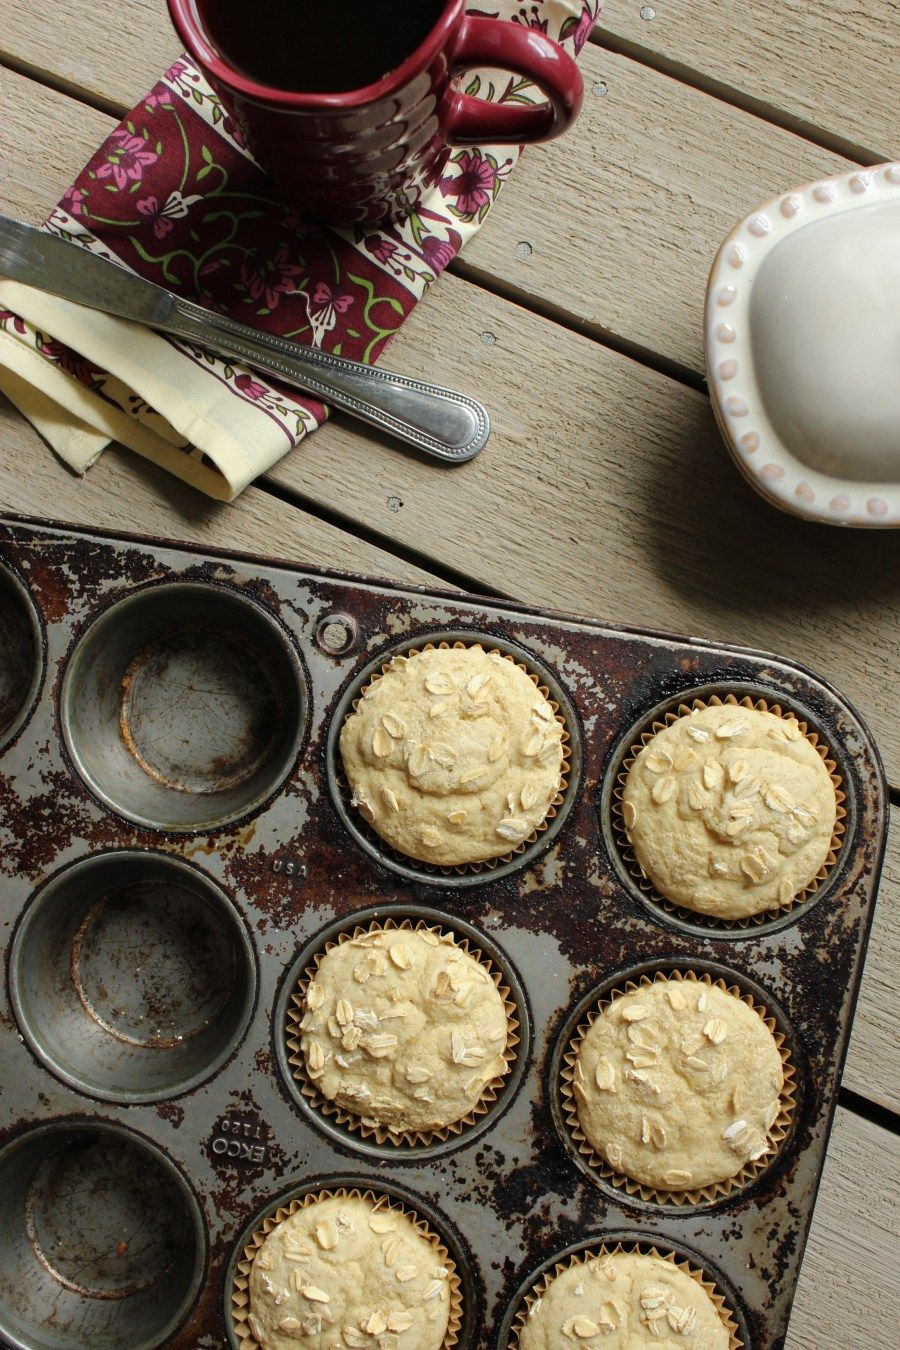 30-Minute Vegan and Gluten Free Muffins - The Fitchen